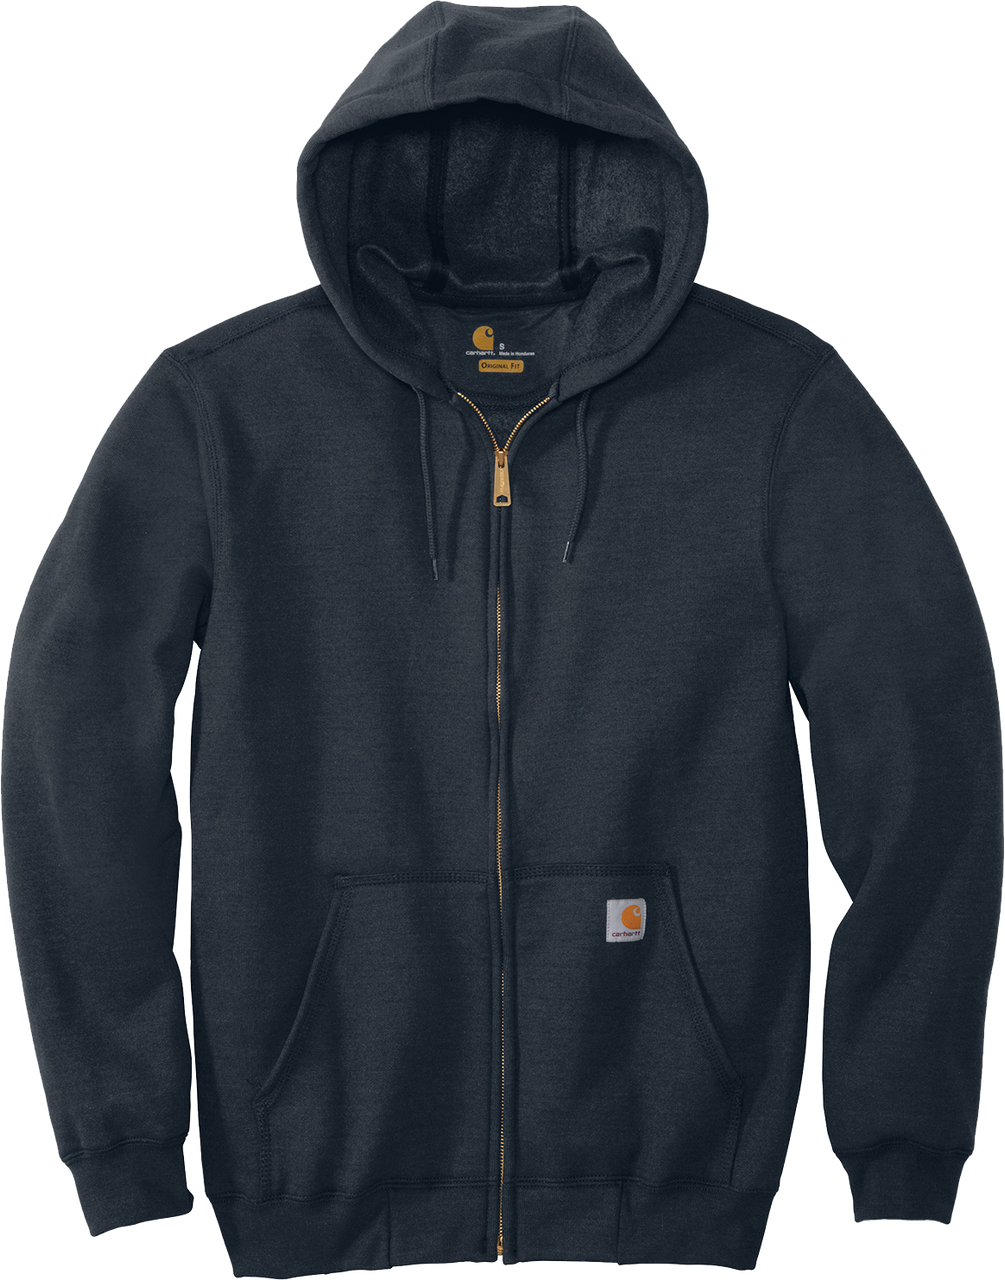 Navy CTK122 Carhartt 10.5 oz Midweight Hooded Full Zip Sweatshirt